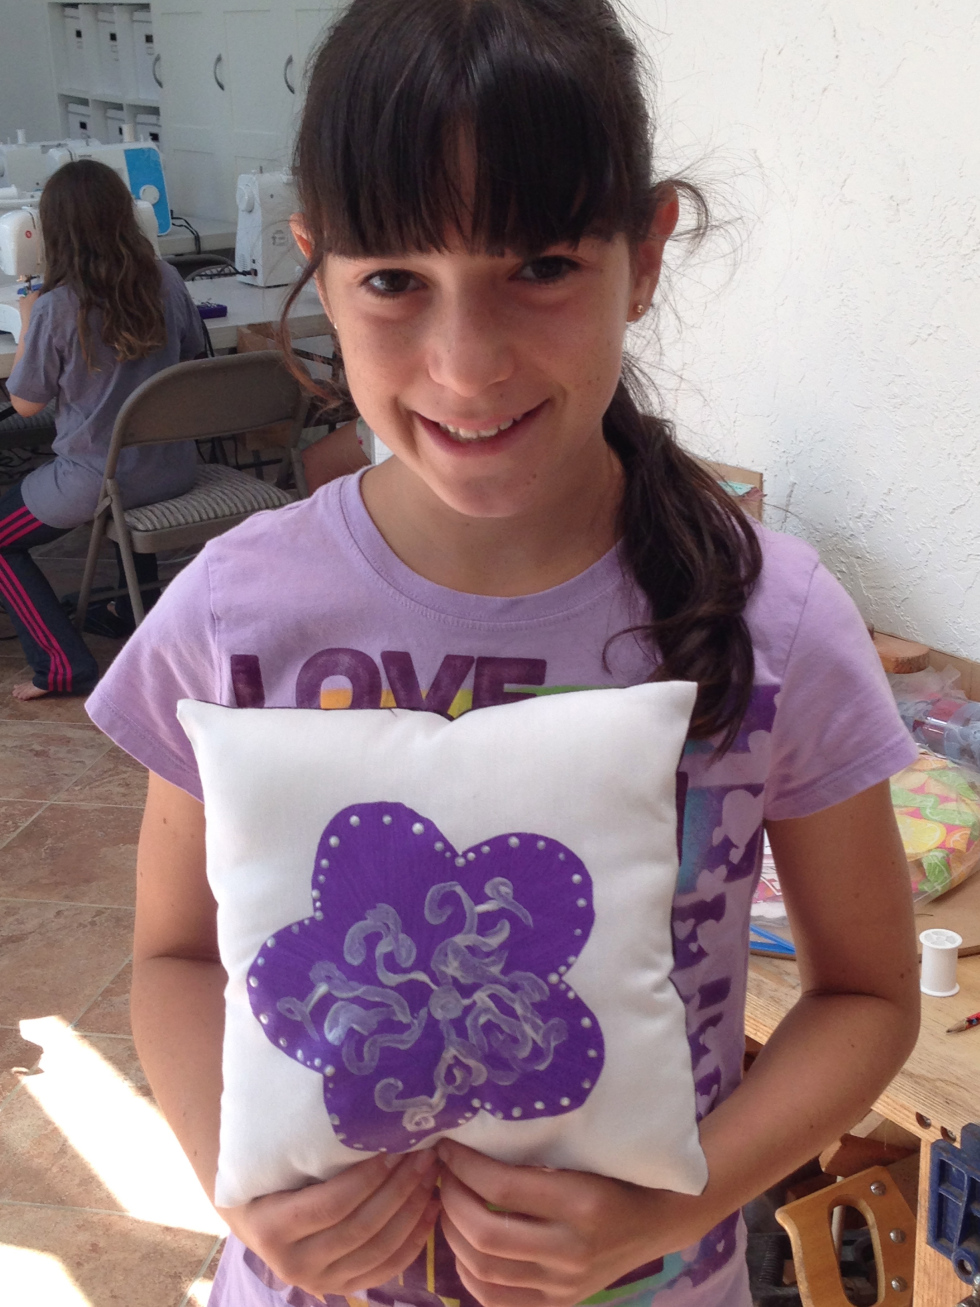 6th grader painted pillow.